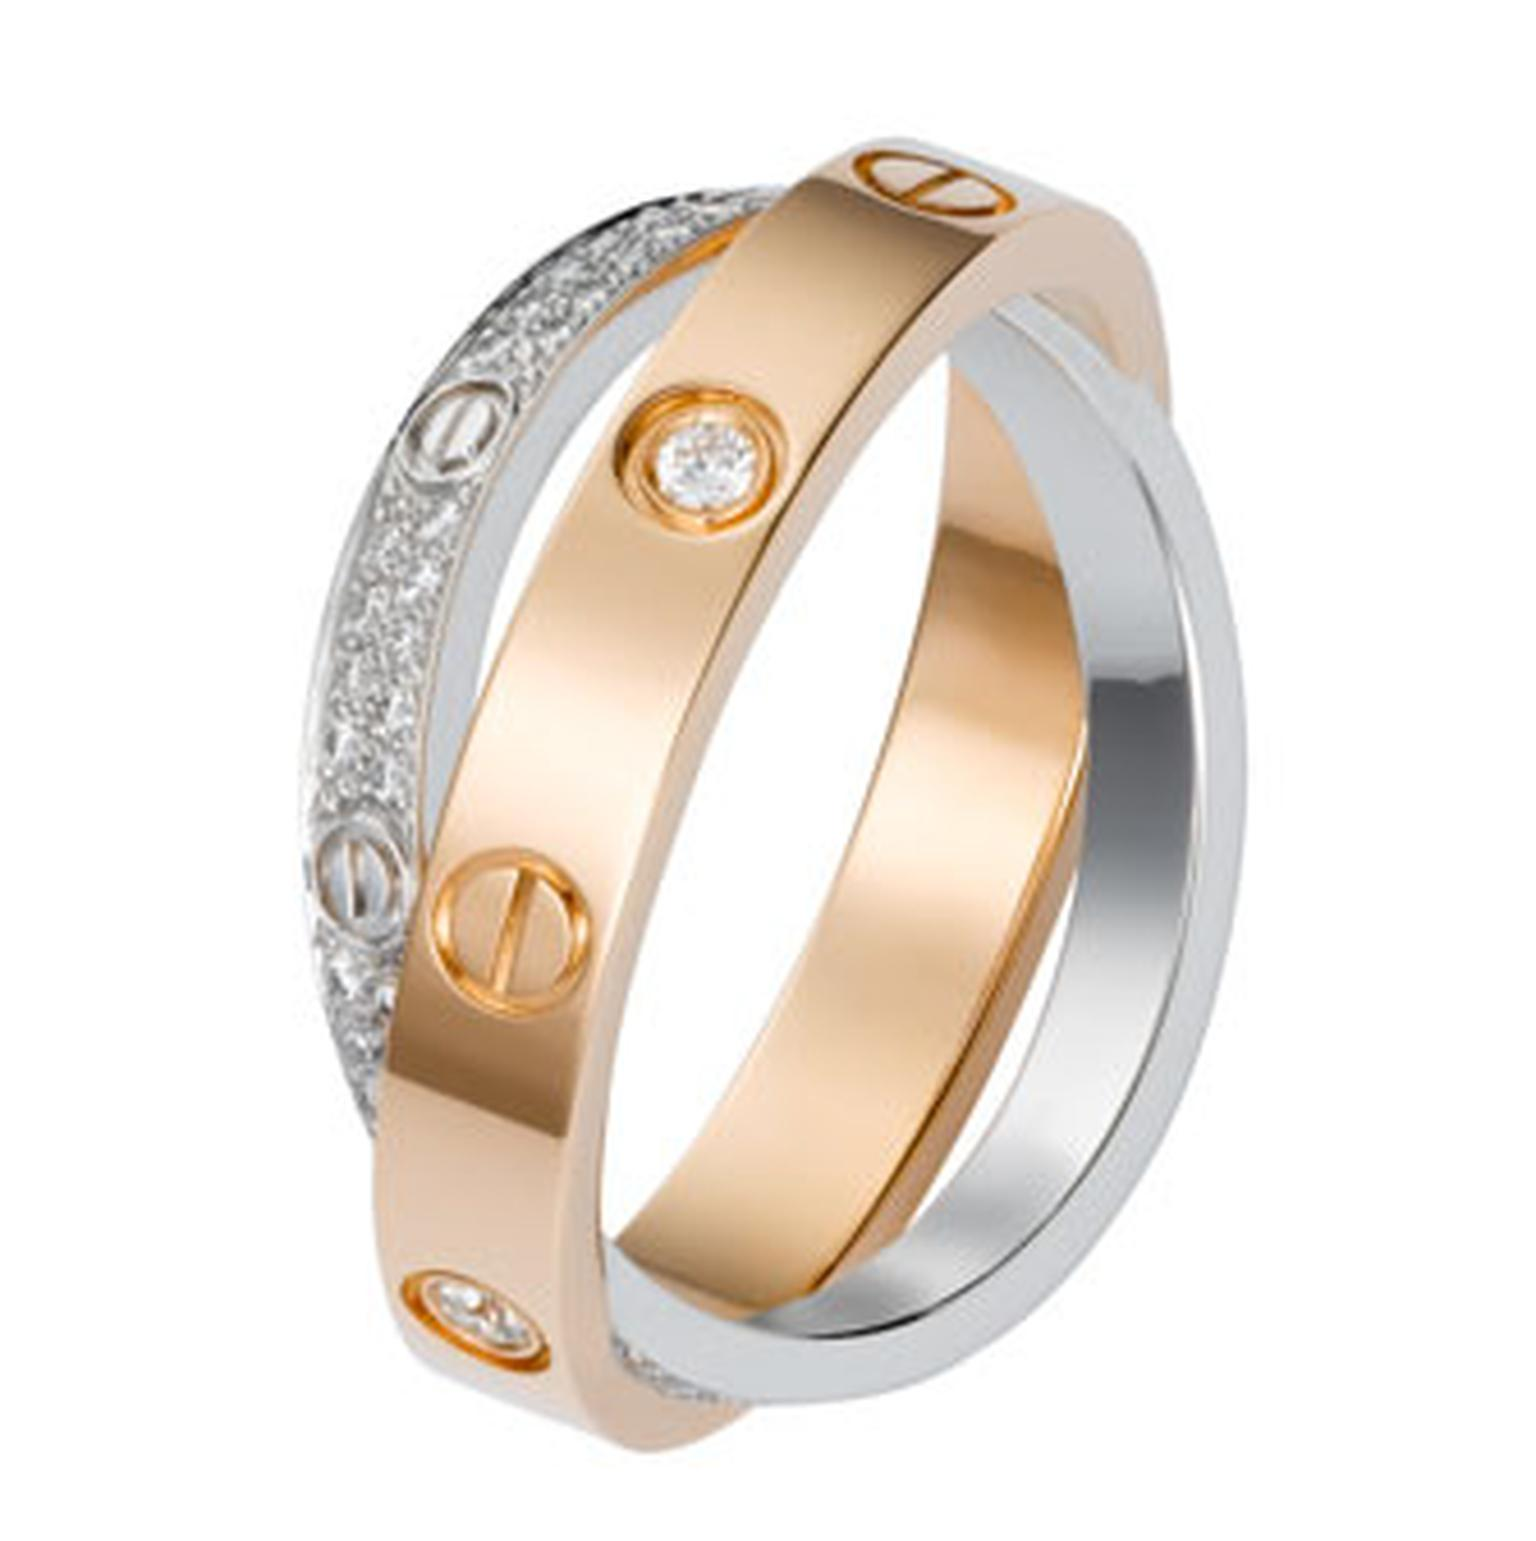 CartierLove Ring with diamonds